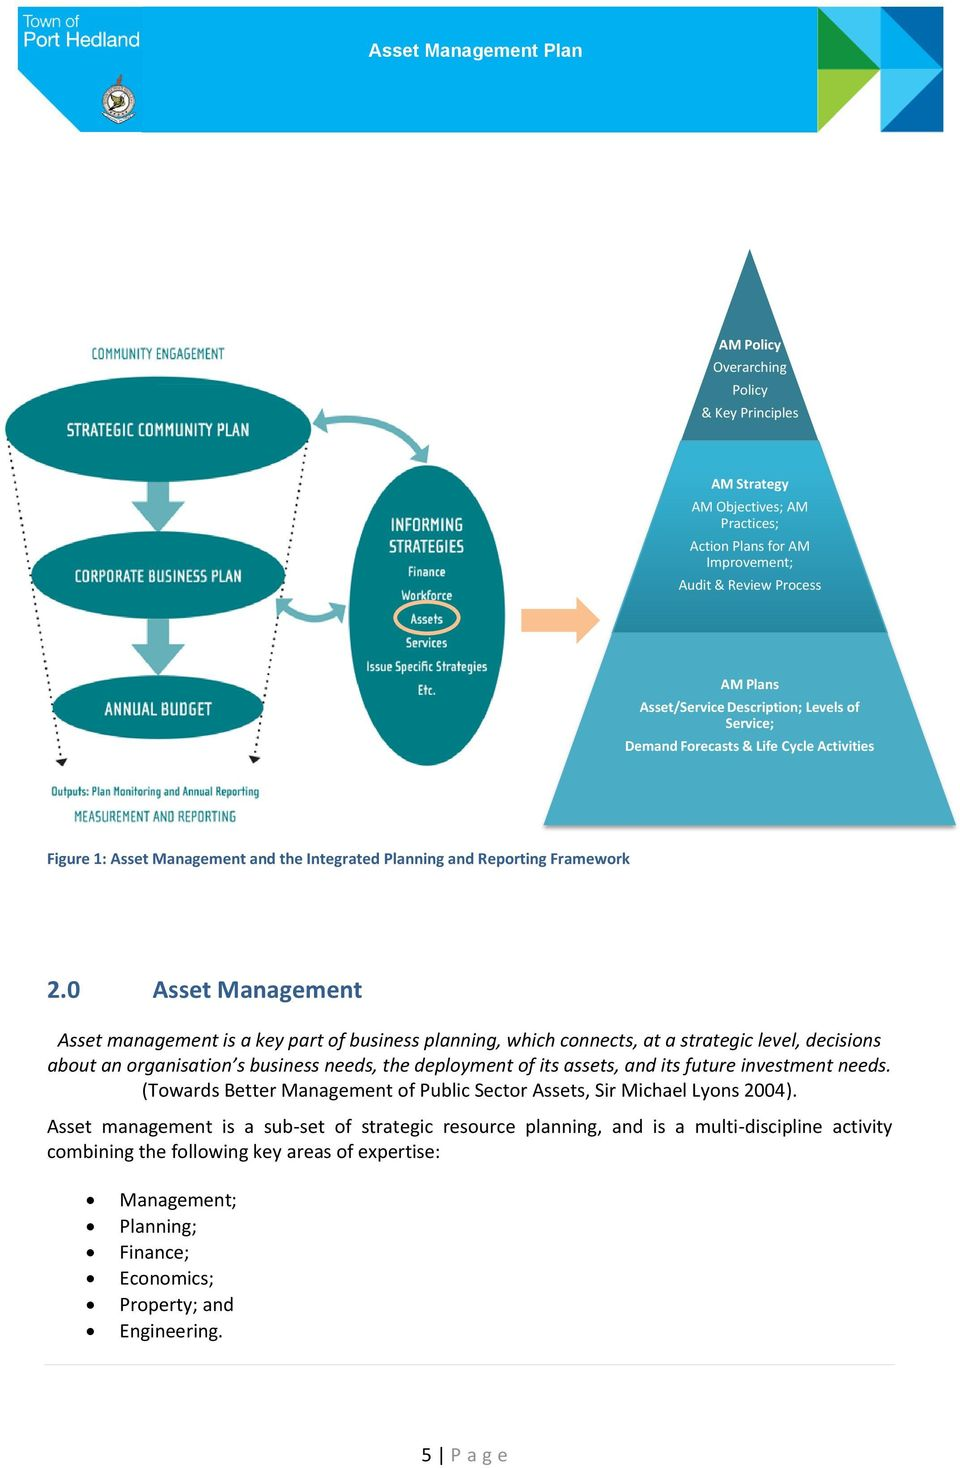 0 Asset Management Asset management is a key part of business planning, which connects, at a strategic level, decisions about an organisation s business needs, the deployment of its assets, and its